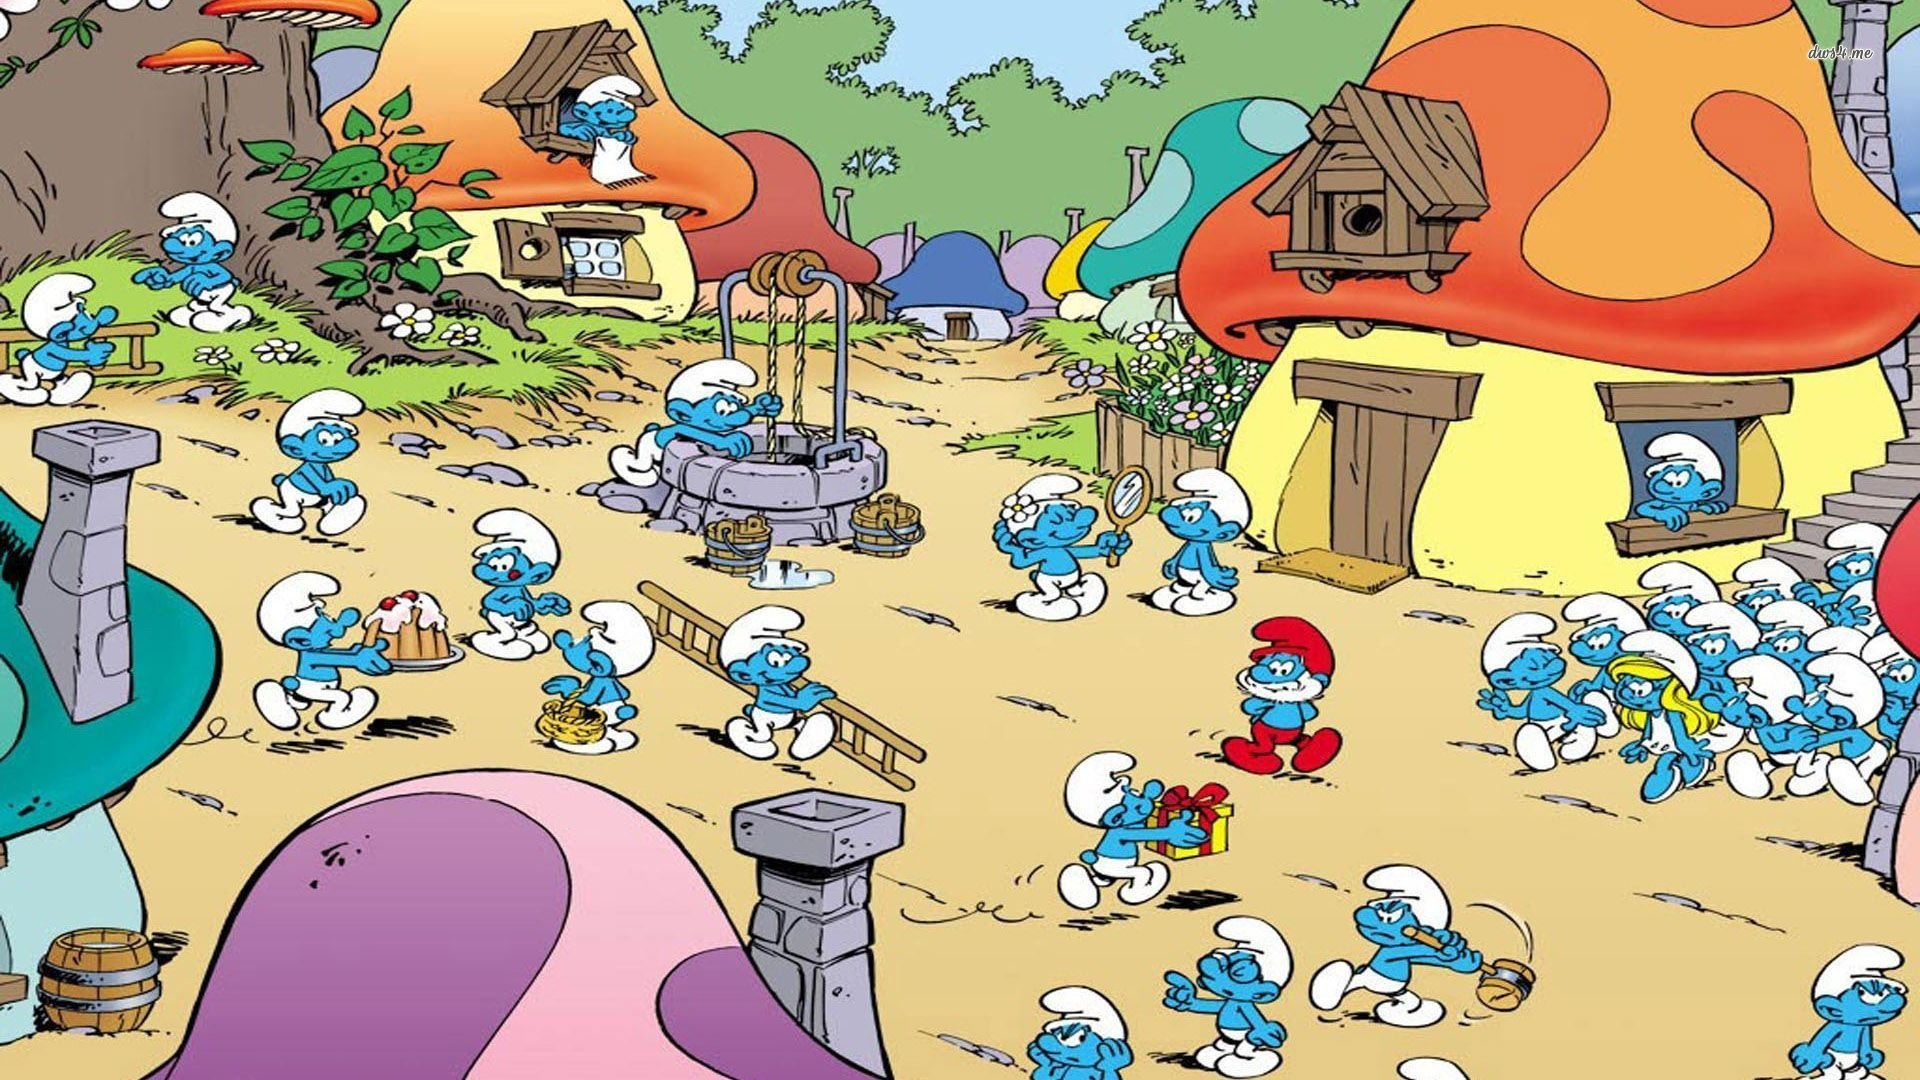 the smurfs HD Wallpaper | Background Image | 1920x1080 ...